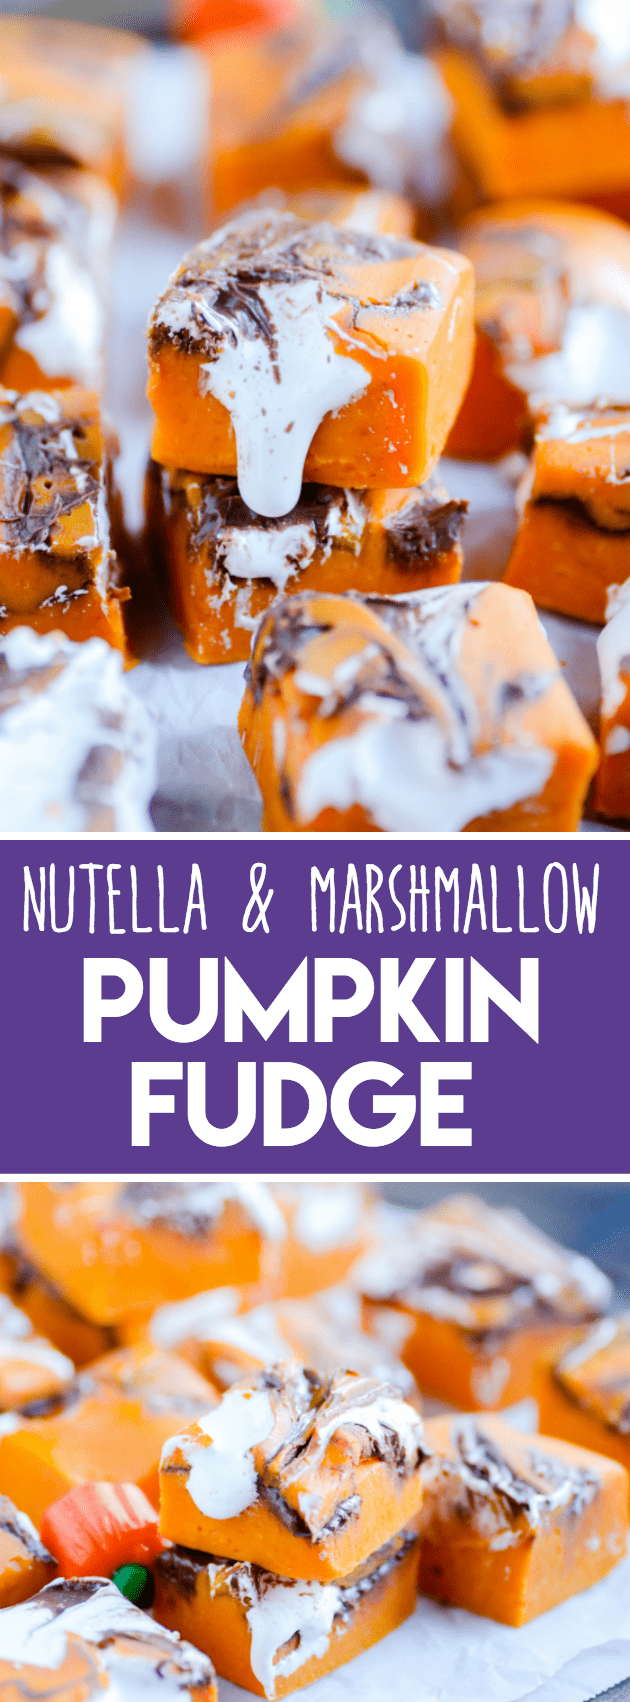 Pumpkin, Nutella, and marshmallow cream make this like no other pumpkin fudge you've had before!